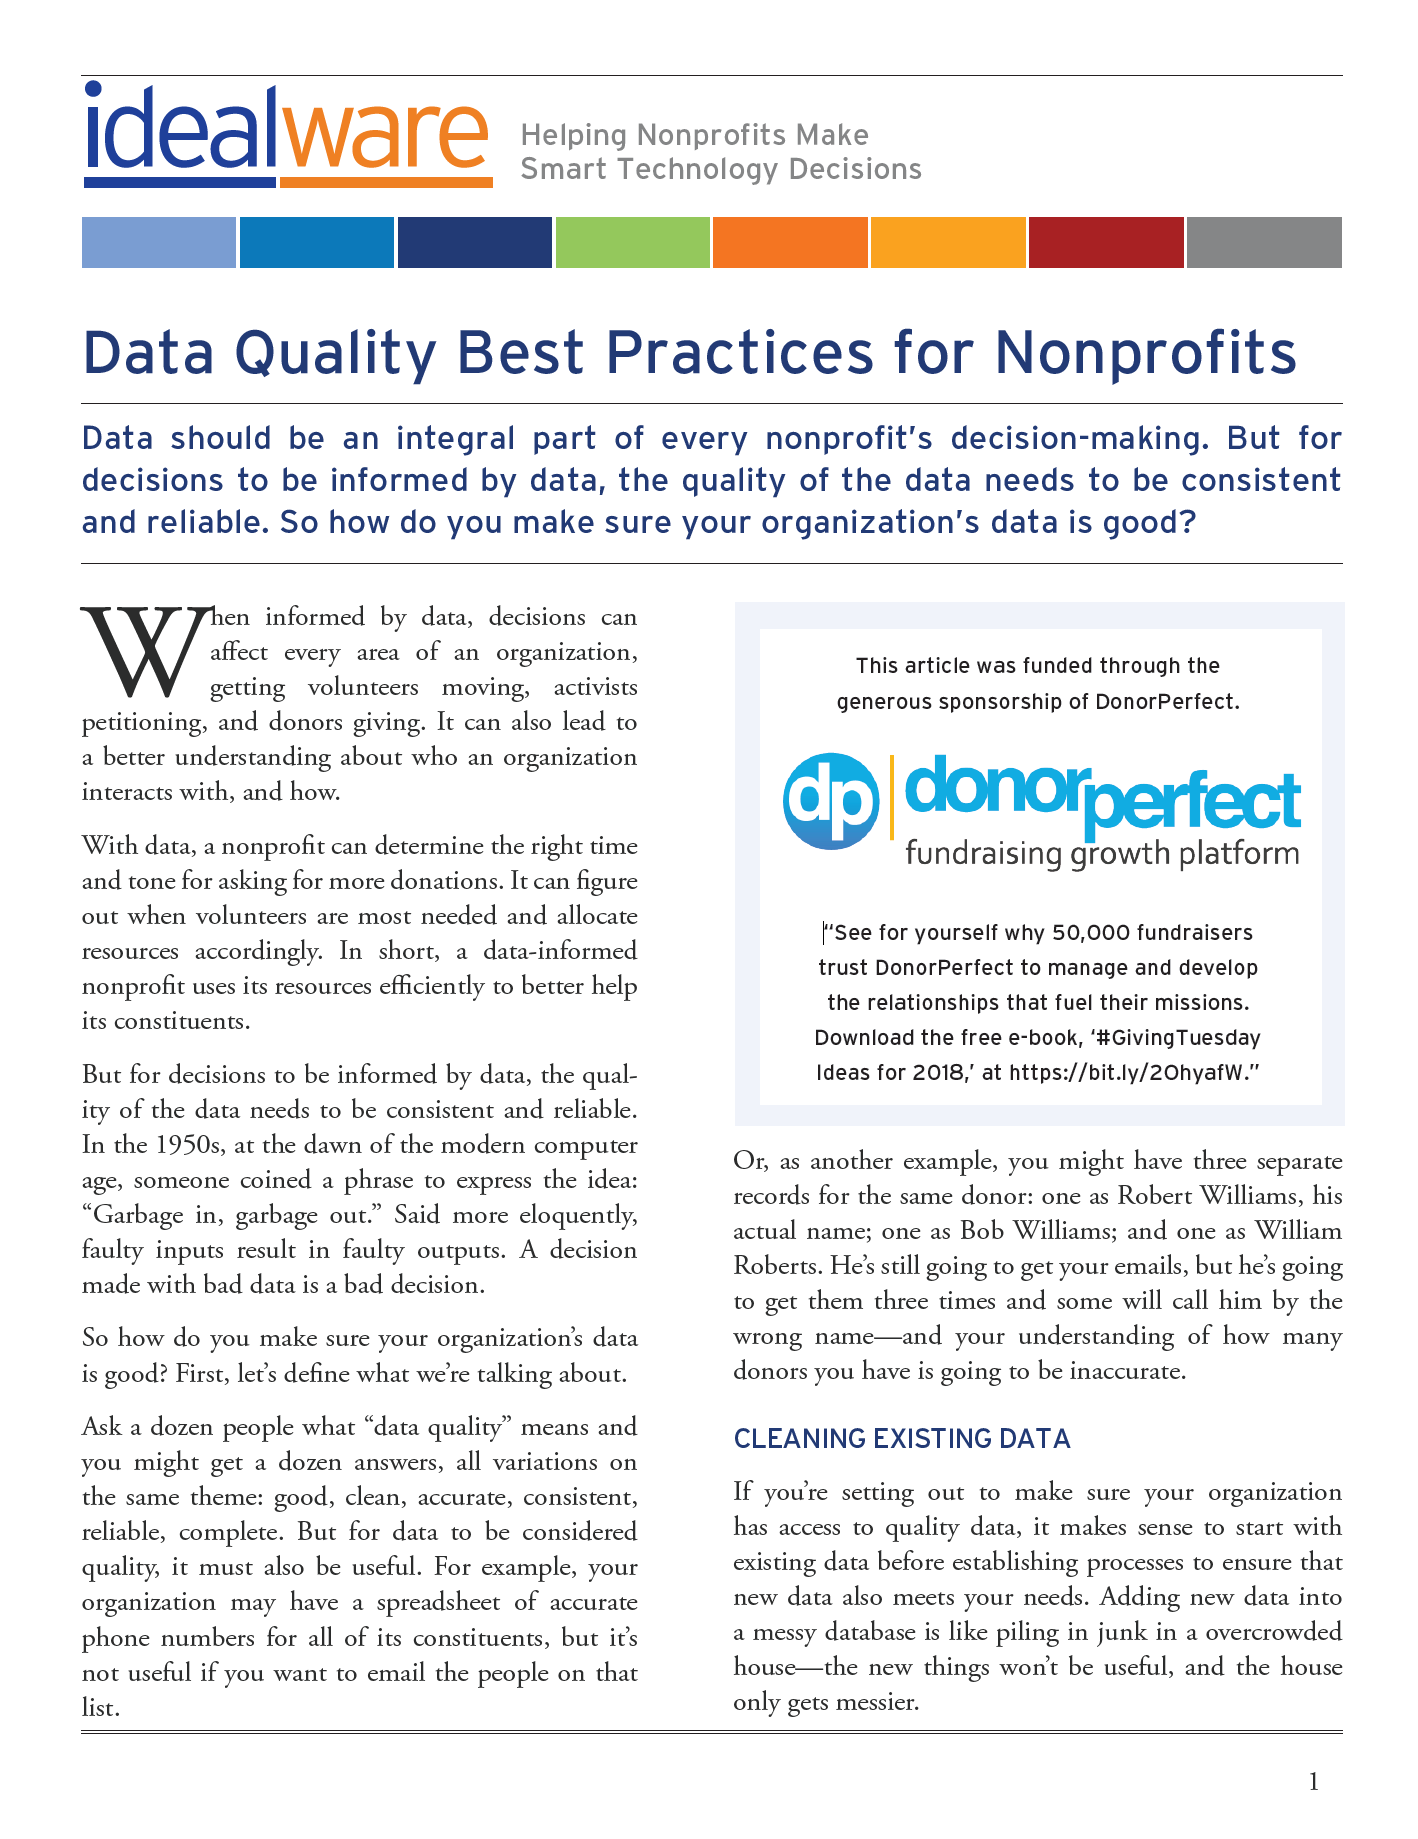 But For Decisions To Be Informed By Data The Quality Of The Data Needs To Be Consistent And Reliable What Does Good Data Look Like